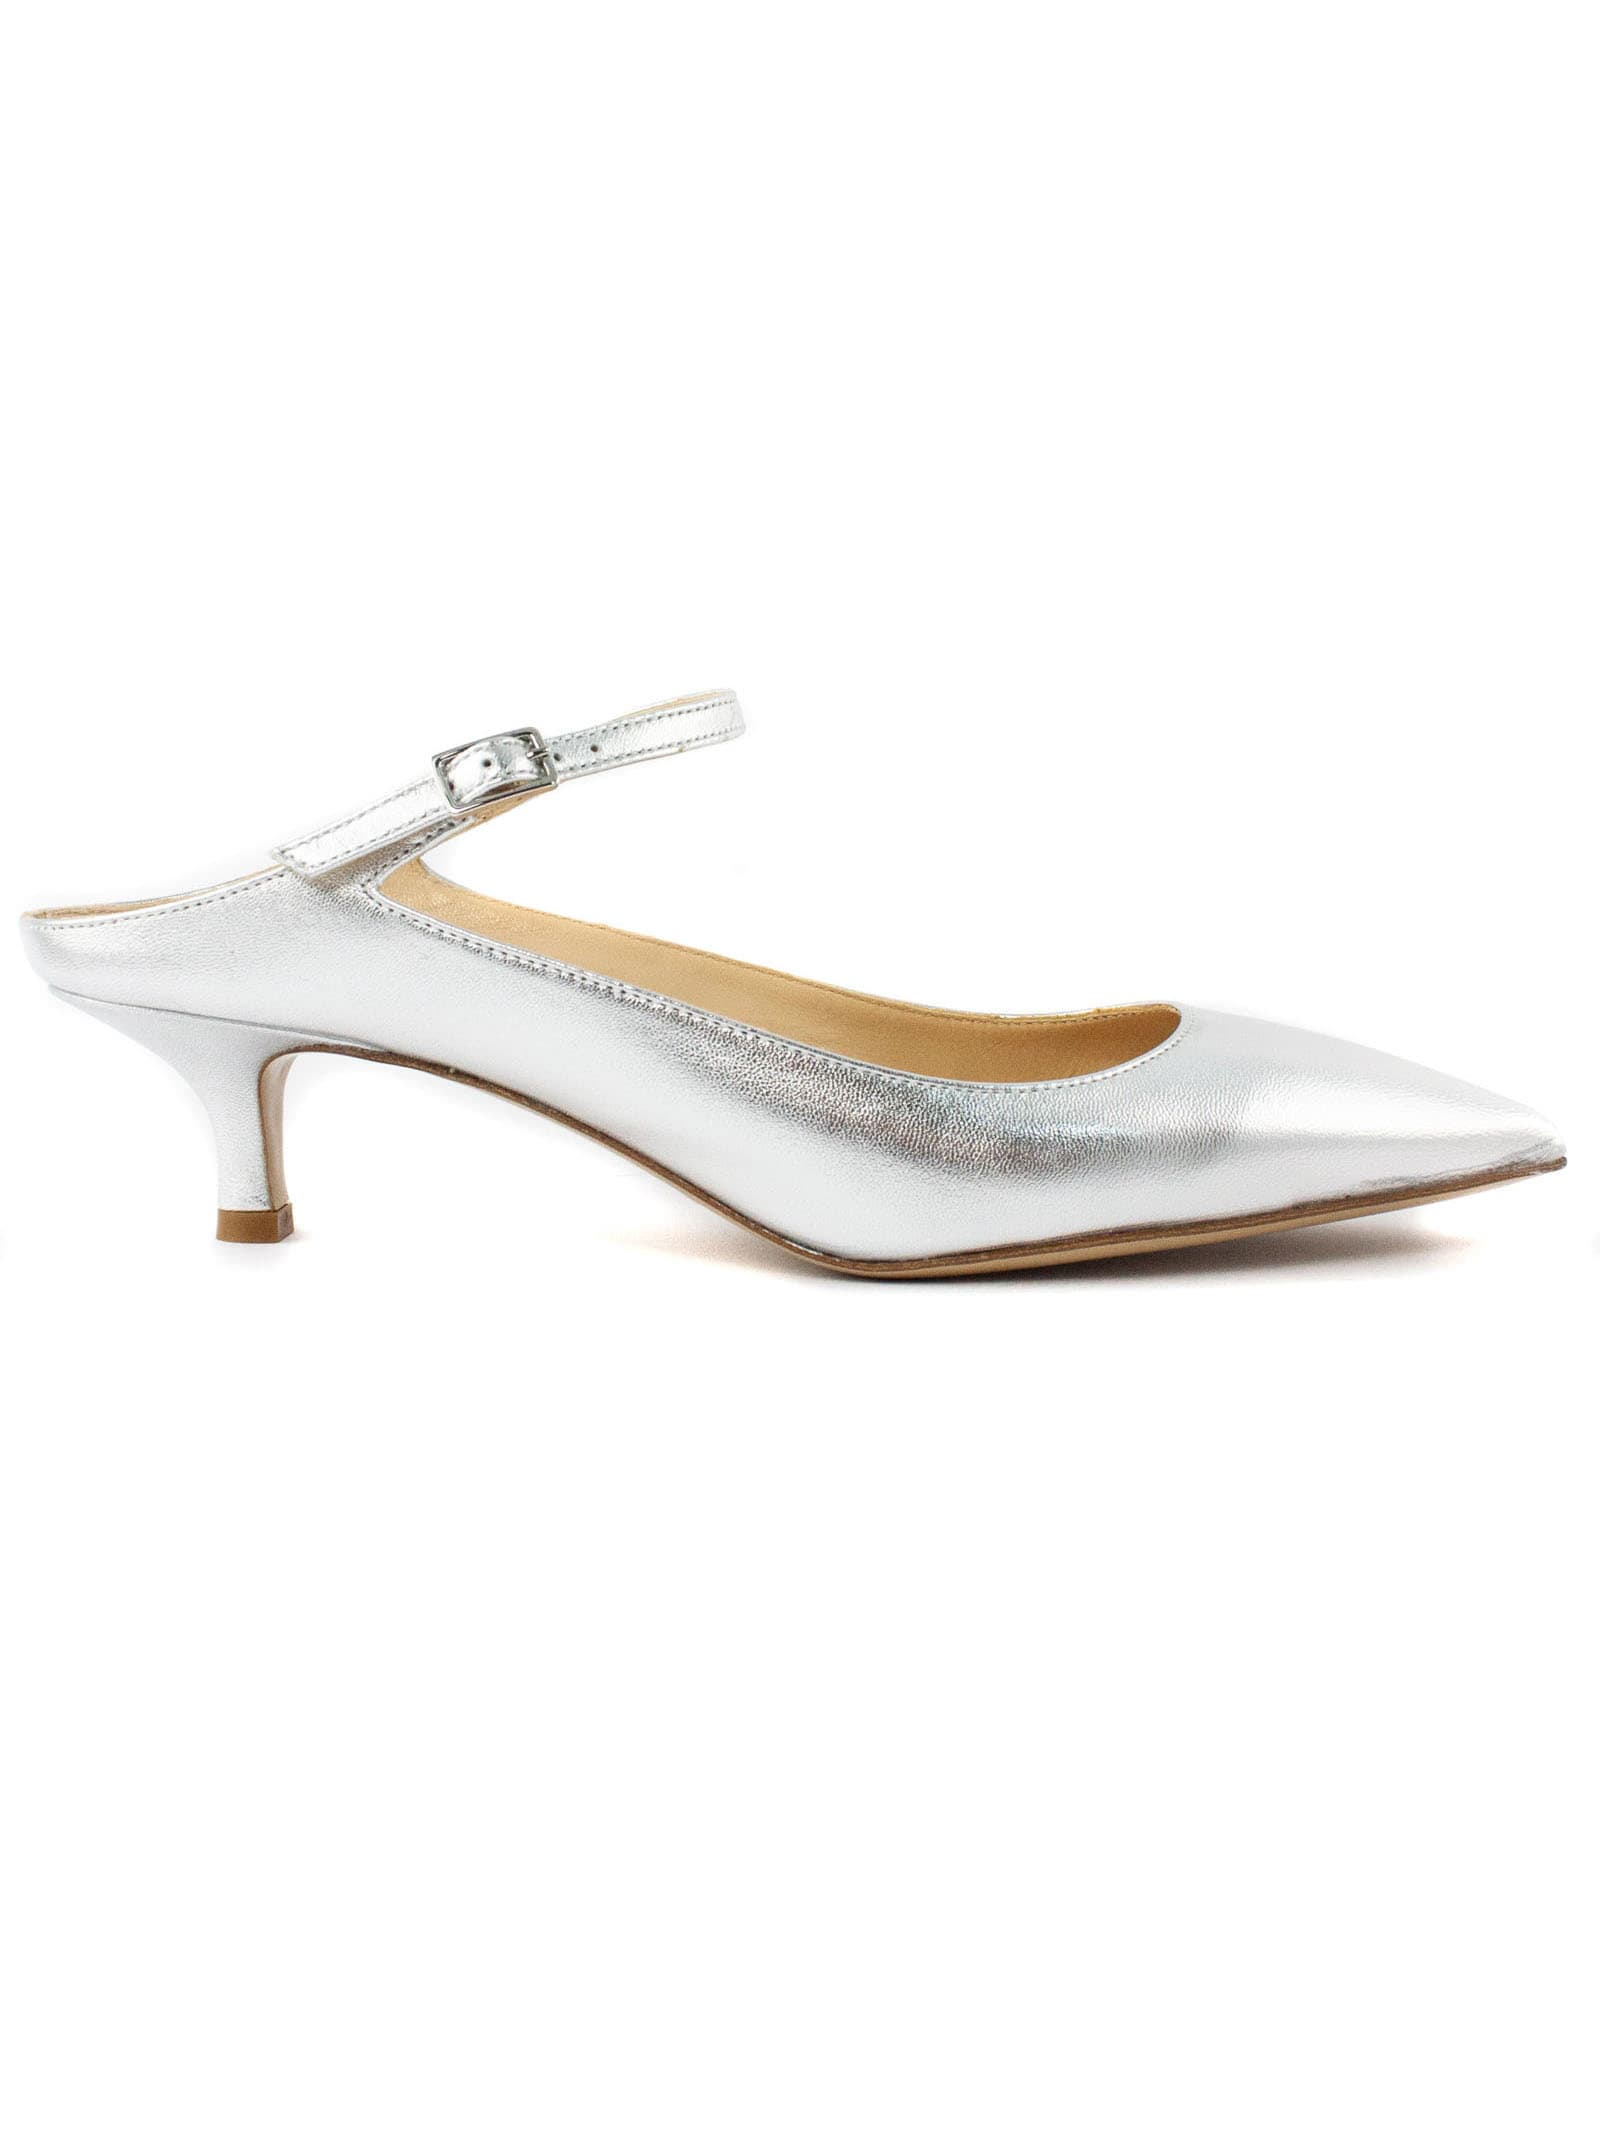 Silver Metallic Leather Pumps